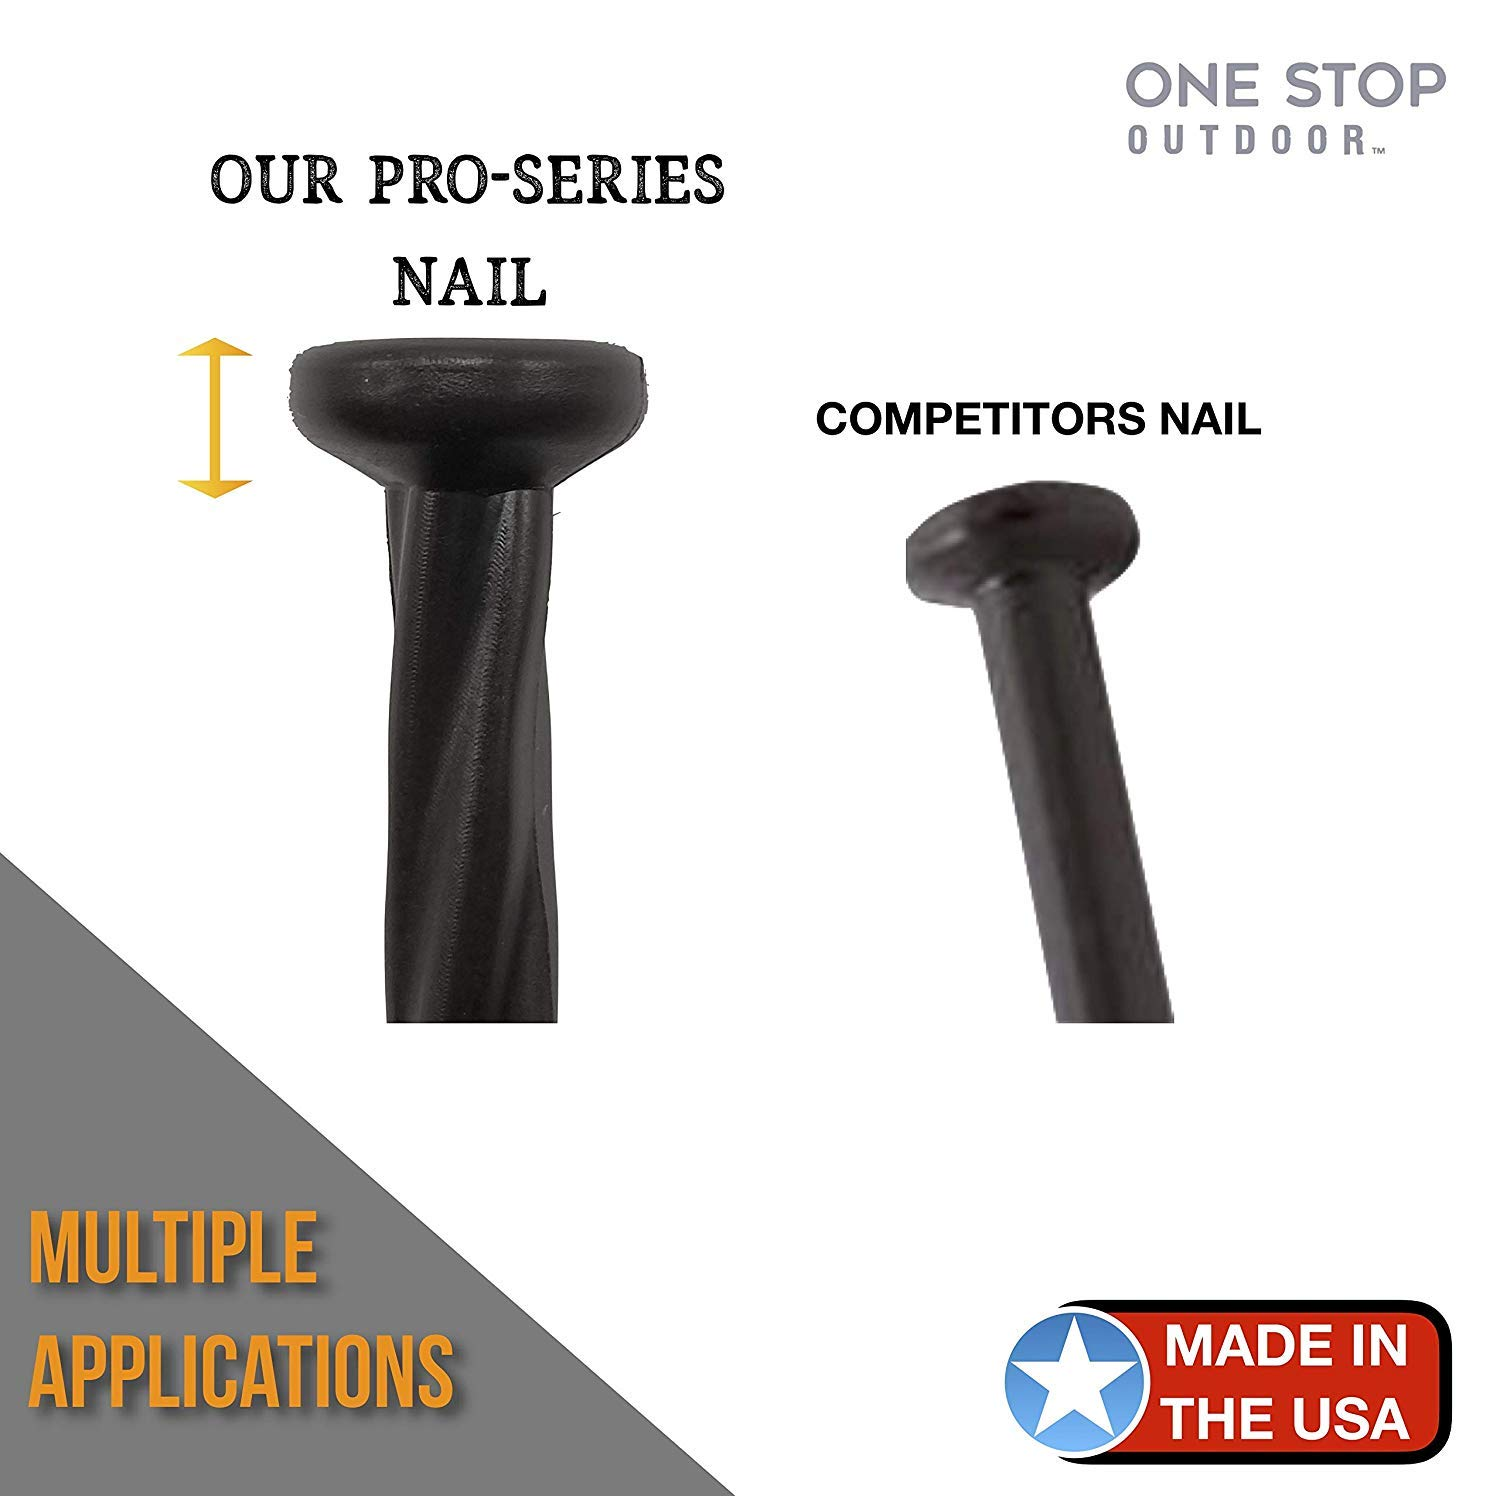 (150 Pack) USA Made - 8'' Inch Plastic Edging Nails, Spiral Nylon Landscape Stake Nail / Anchoring Spikes For Paver Edging, Weed Barrier, Artificial Turf (Fits Most Brands Dimex EasyFlex Proflex) (150) by One Stop Outdoor (Image #2)